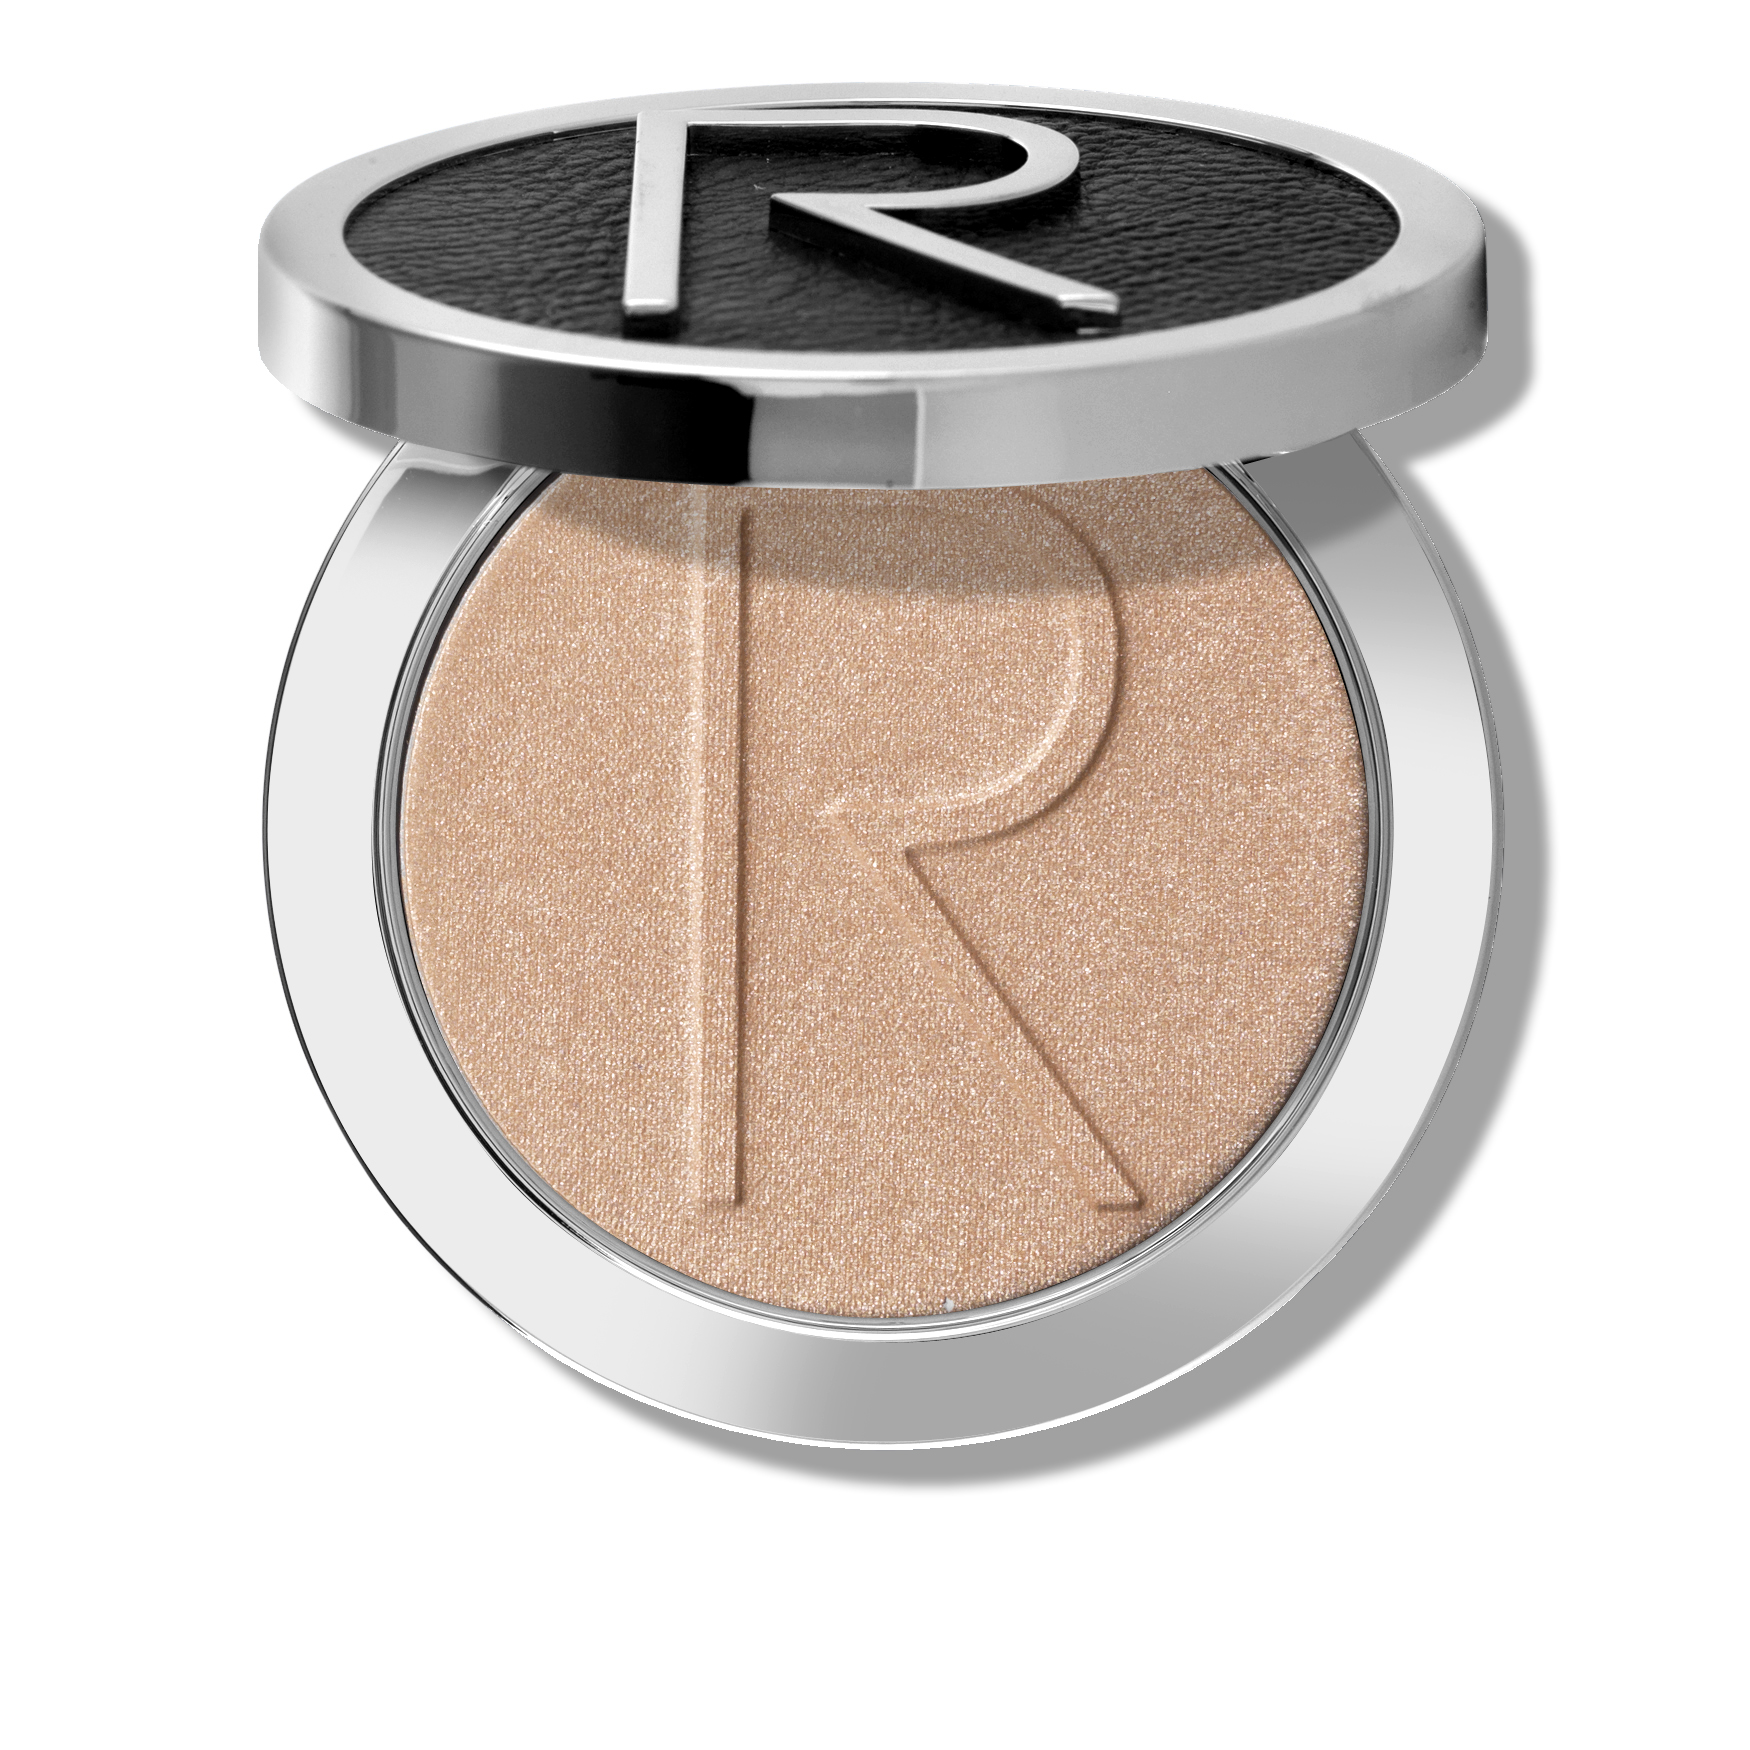 RODIAL | Instaglam Compact Deluxe Highlighting Powder - 01